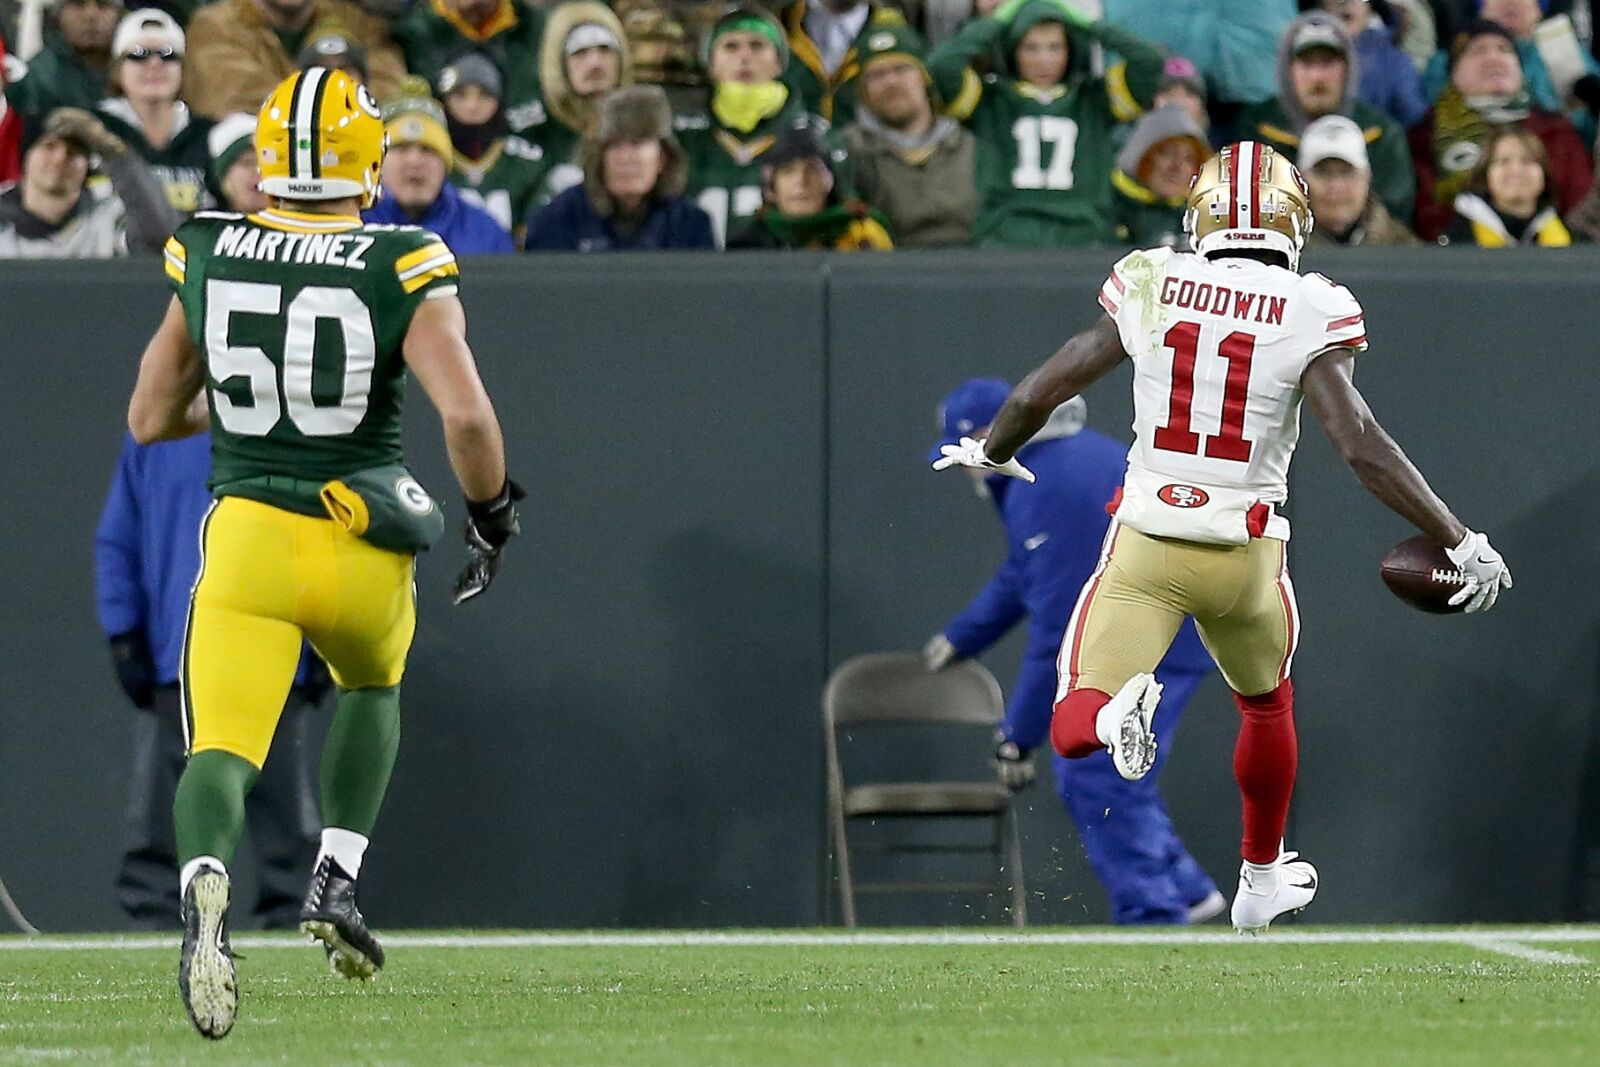 What worked, what didn't from the 49ers offense in Week 6